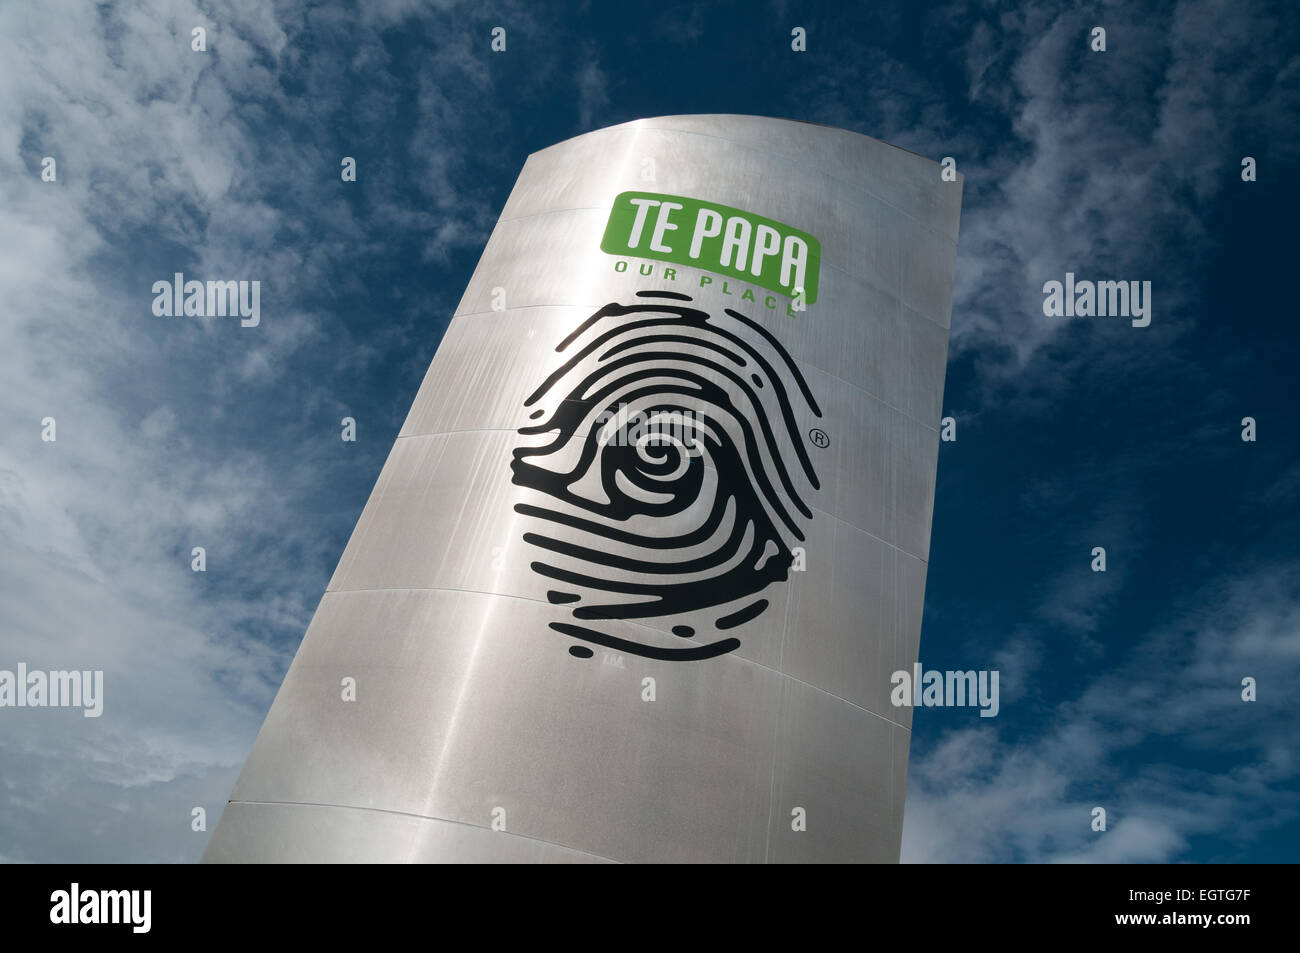 Te Papa Tongarewa, das Museum of New Zealand, Cable Street, Wellington, Nordinsel, Neuseeland. Stockbild